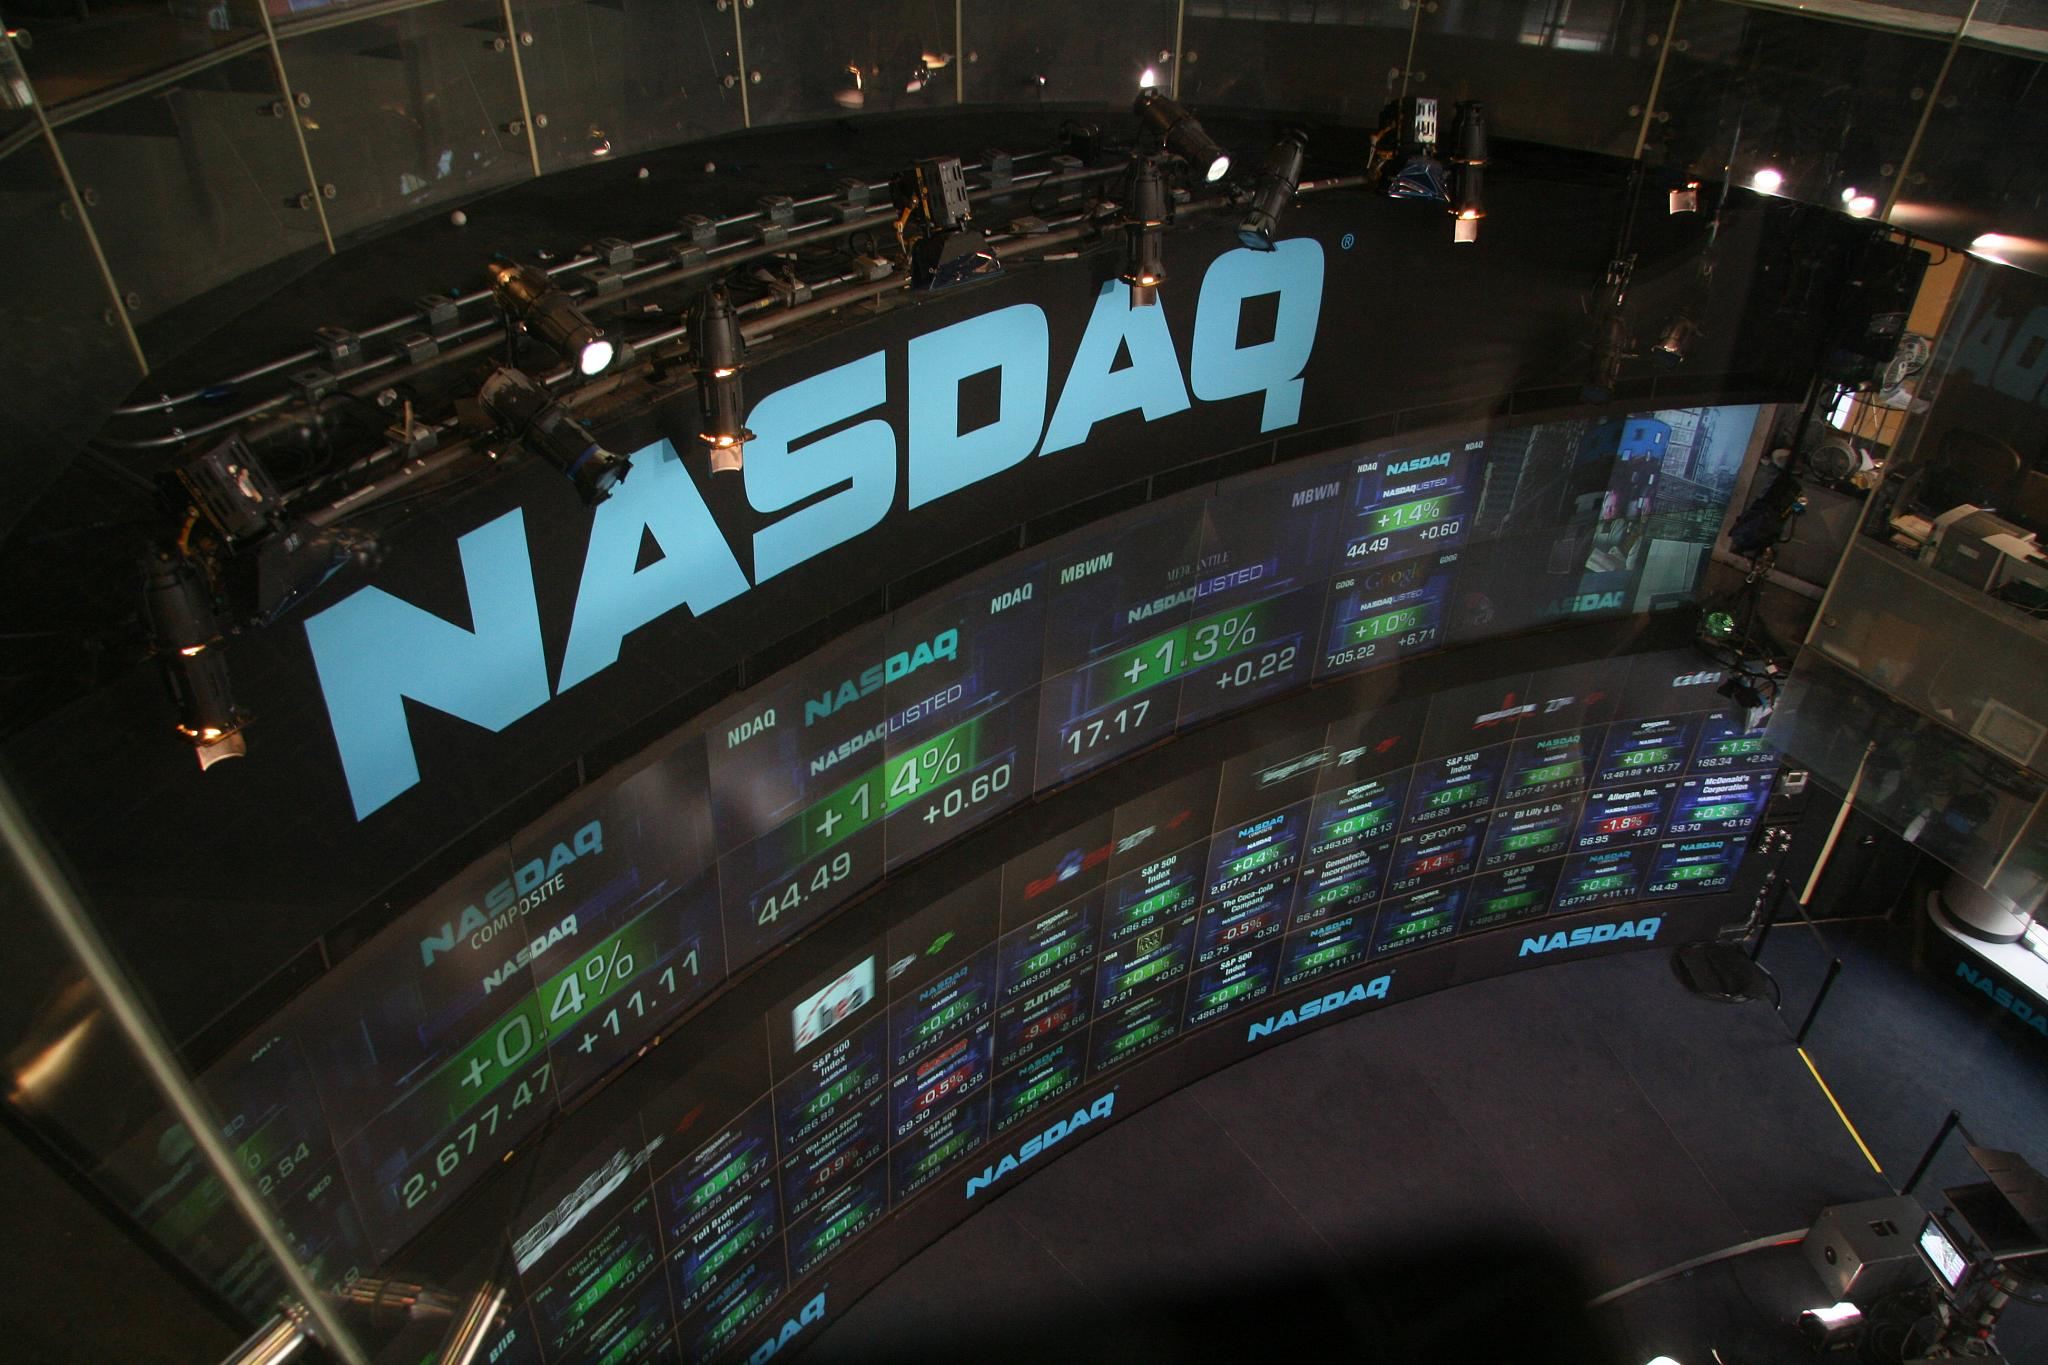 Nasdaq is Building a Crypto Price Movement Predictor According to Report